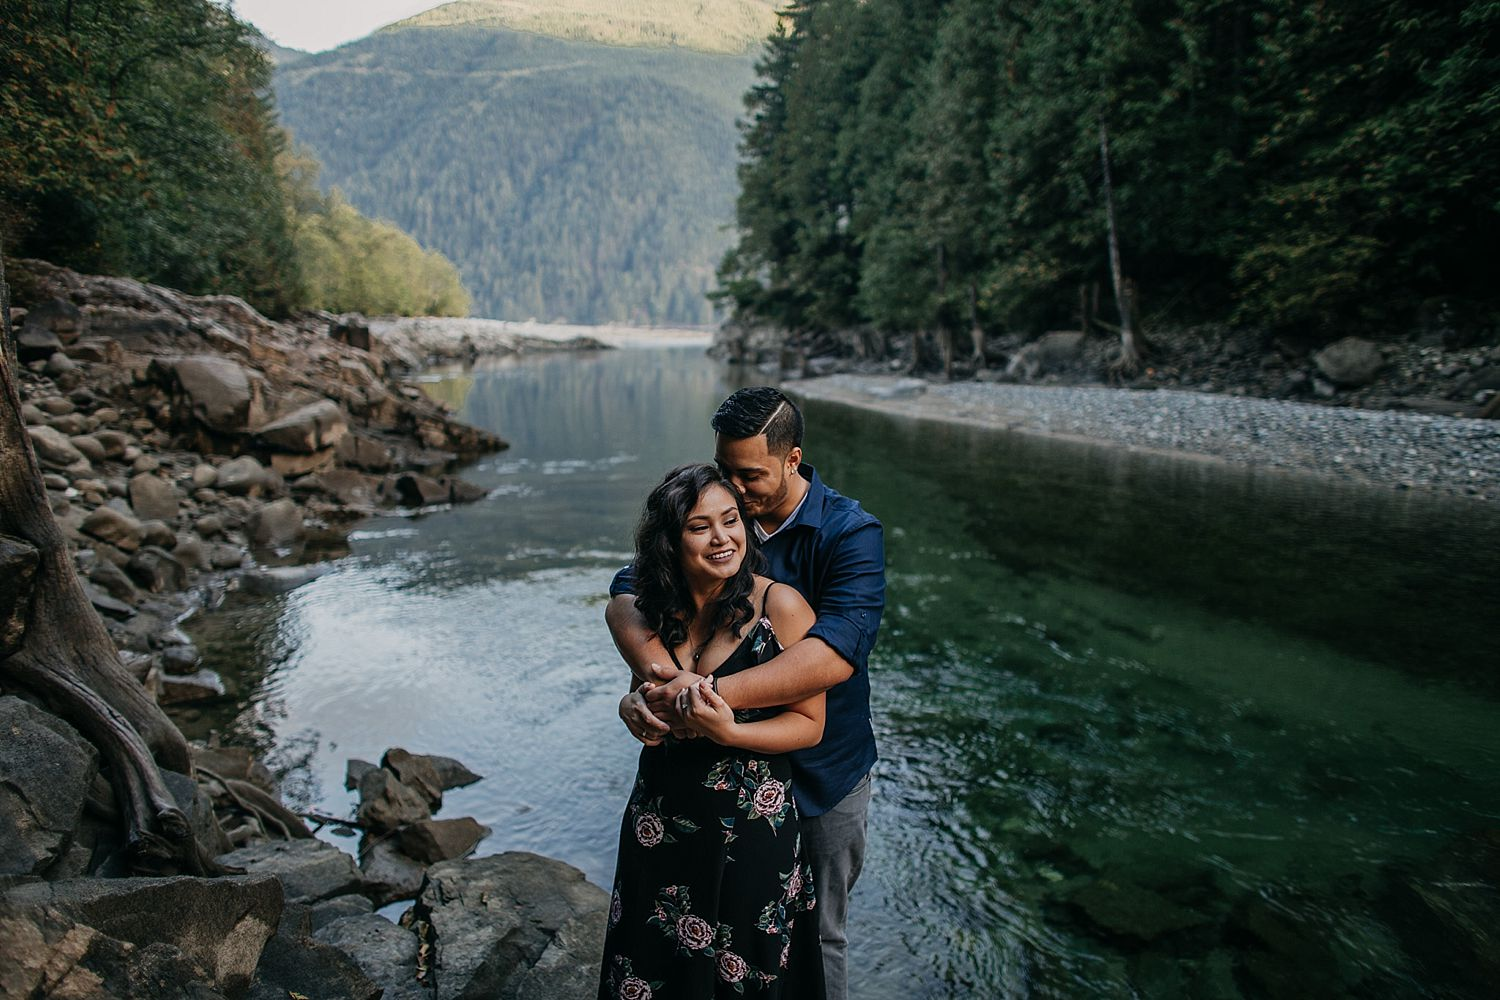 Copy of couple hugging candid moment water trees mountain